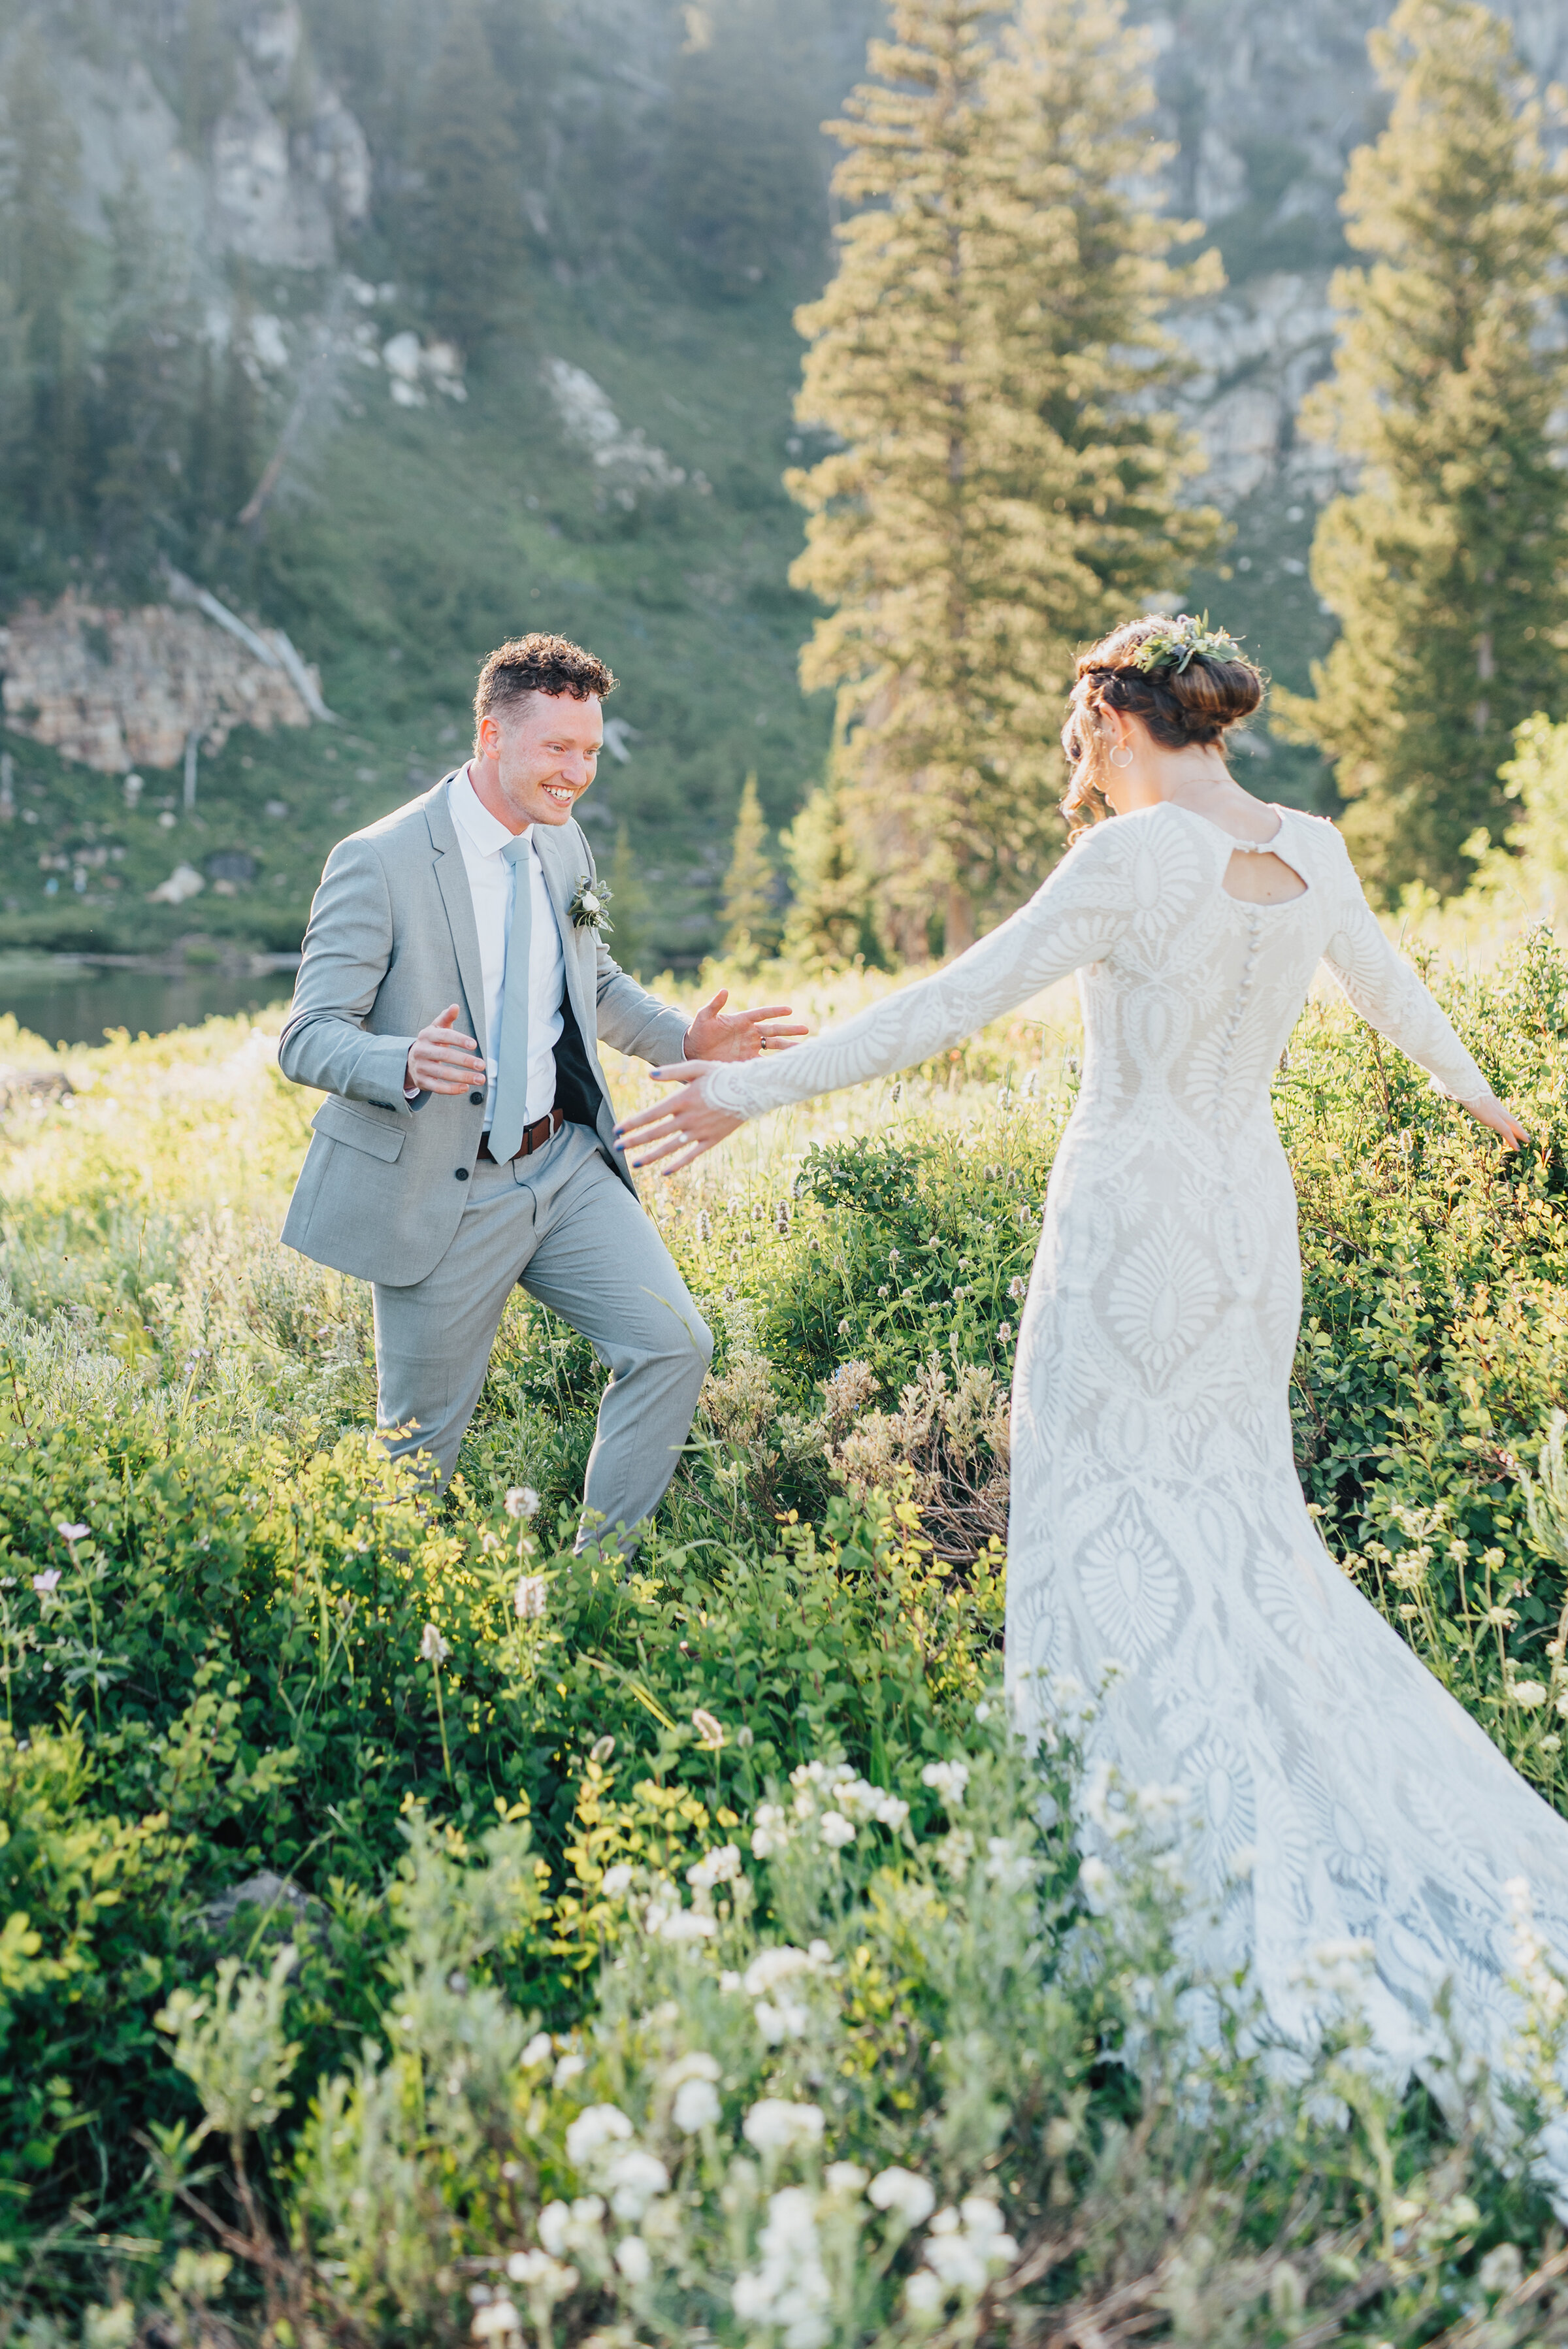 Joyful bride and groom in a dreamy meadow up Logan canyon for their first look. Kristi Alyse photography Logan Utah wedding photographer forest nature dreamy formals Logan canyon Tony Grove scenic bridals Northern Utah photographer Utah brides bride and groom Cache Valley #kristialysephotography #loganutahphotographer #tonygrove #logancanyon #utahweddingphotographer #bridals #formals #wildflowers #northernutah #utahbrides